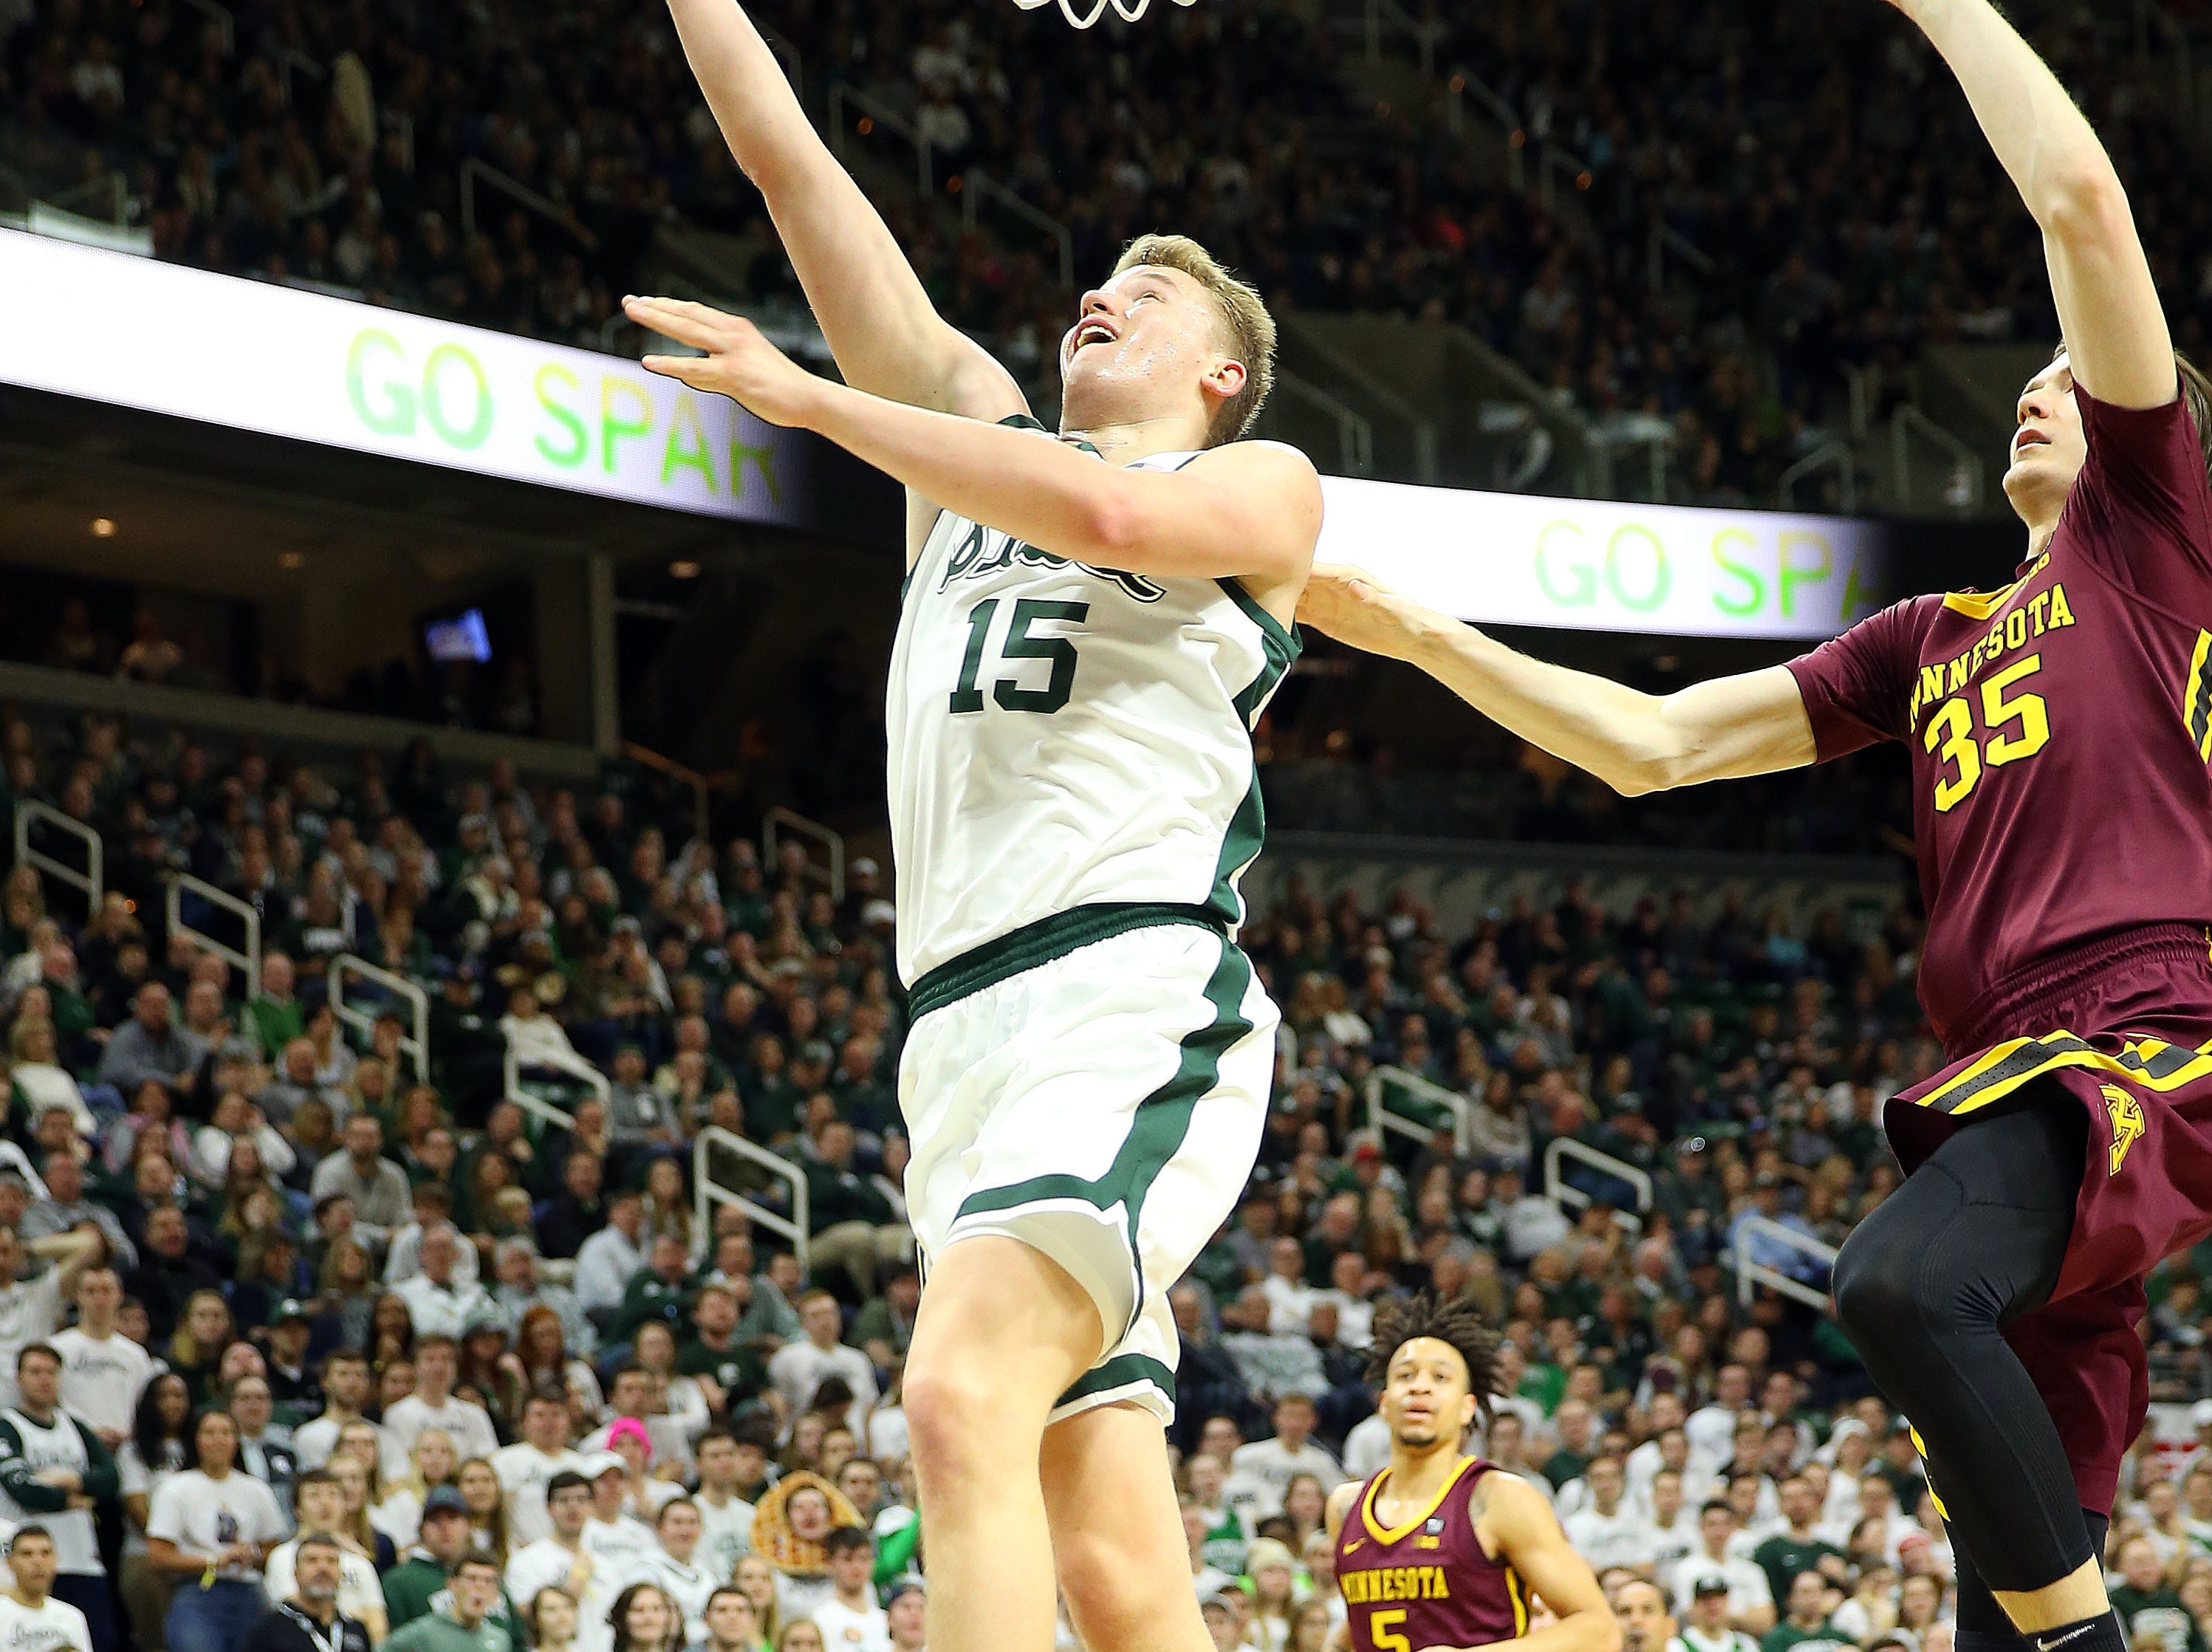 Feb 9, 2019; East Lansing, MI, USA; Michigan State Spartans forward Thomas Kithier (15) lays the ball up against Minnesota Golden Gophers center Matz Stockman (35) during the second half at the Breslin Center. Mandatory Credit: Mike Carter-USA TODAY Sports